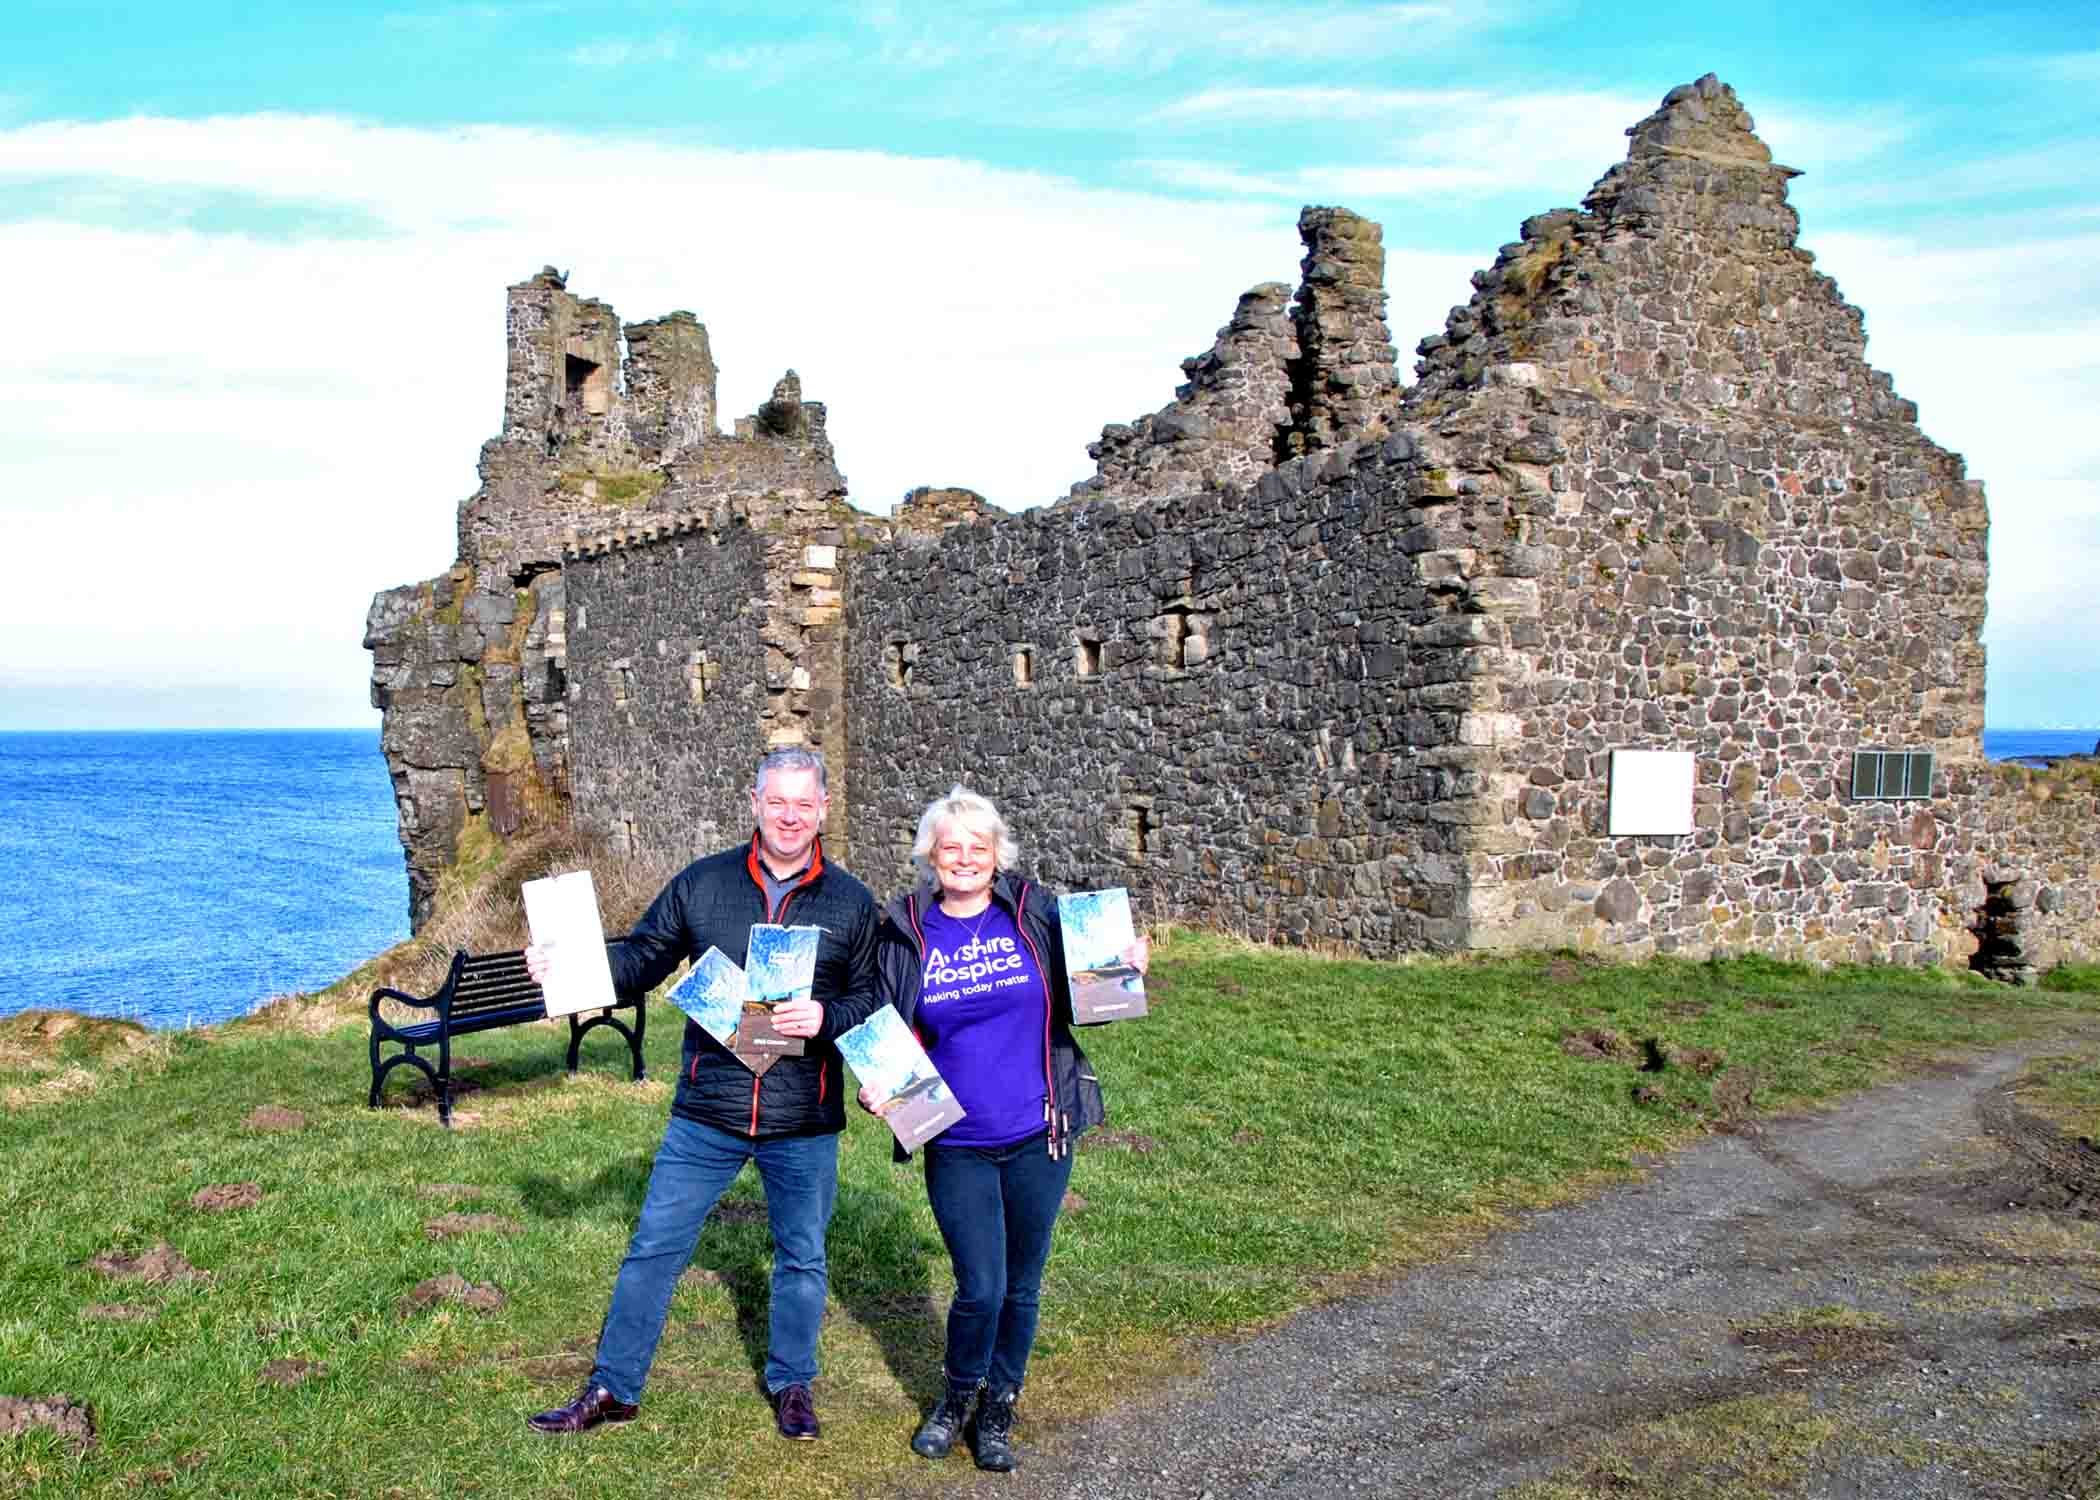 'Castles' theme photo contest for Ayrshire Hospice